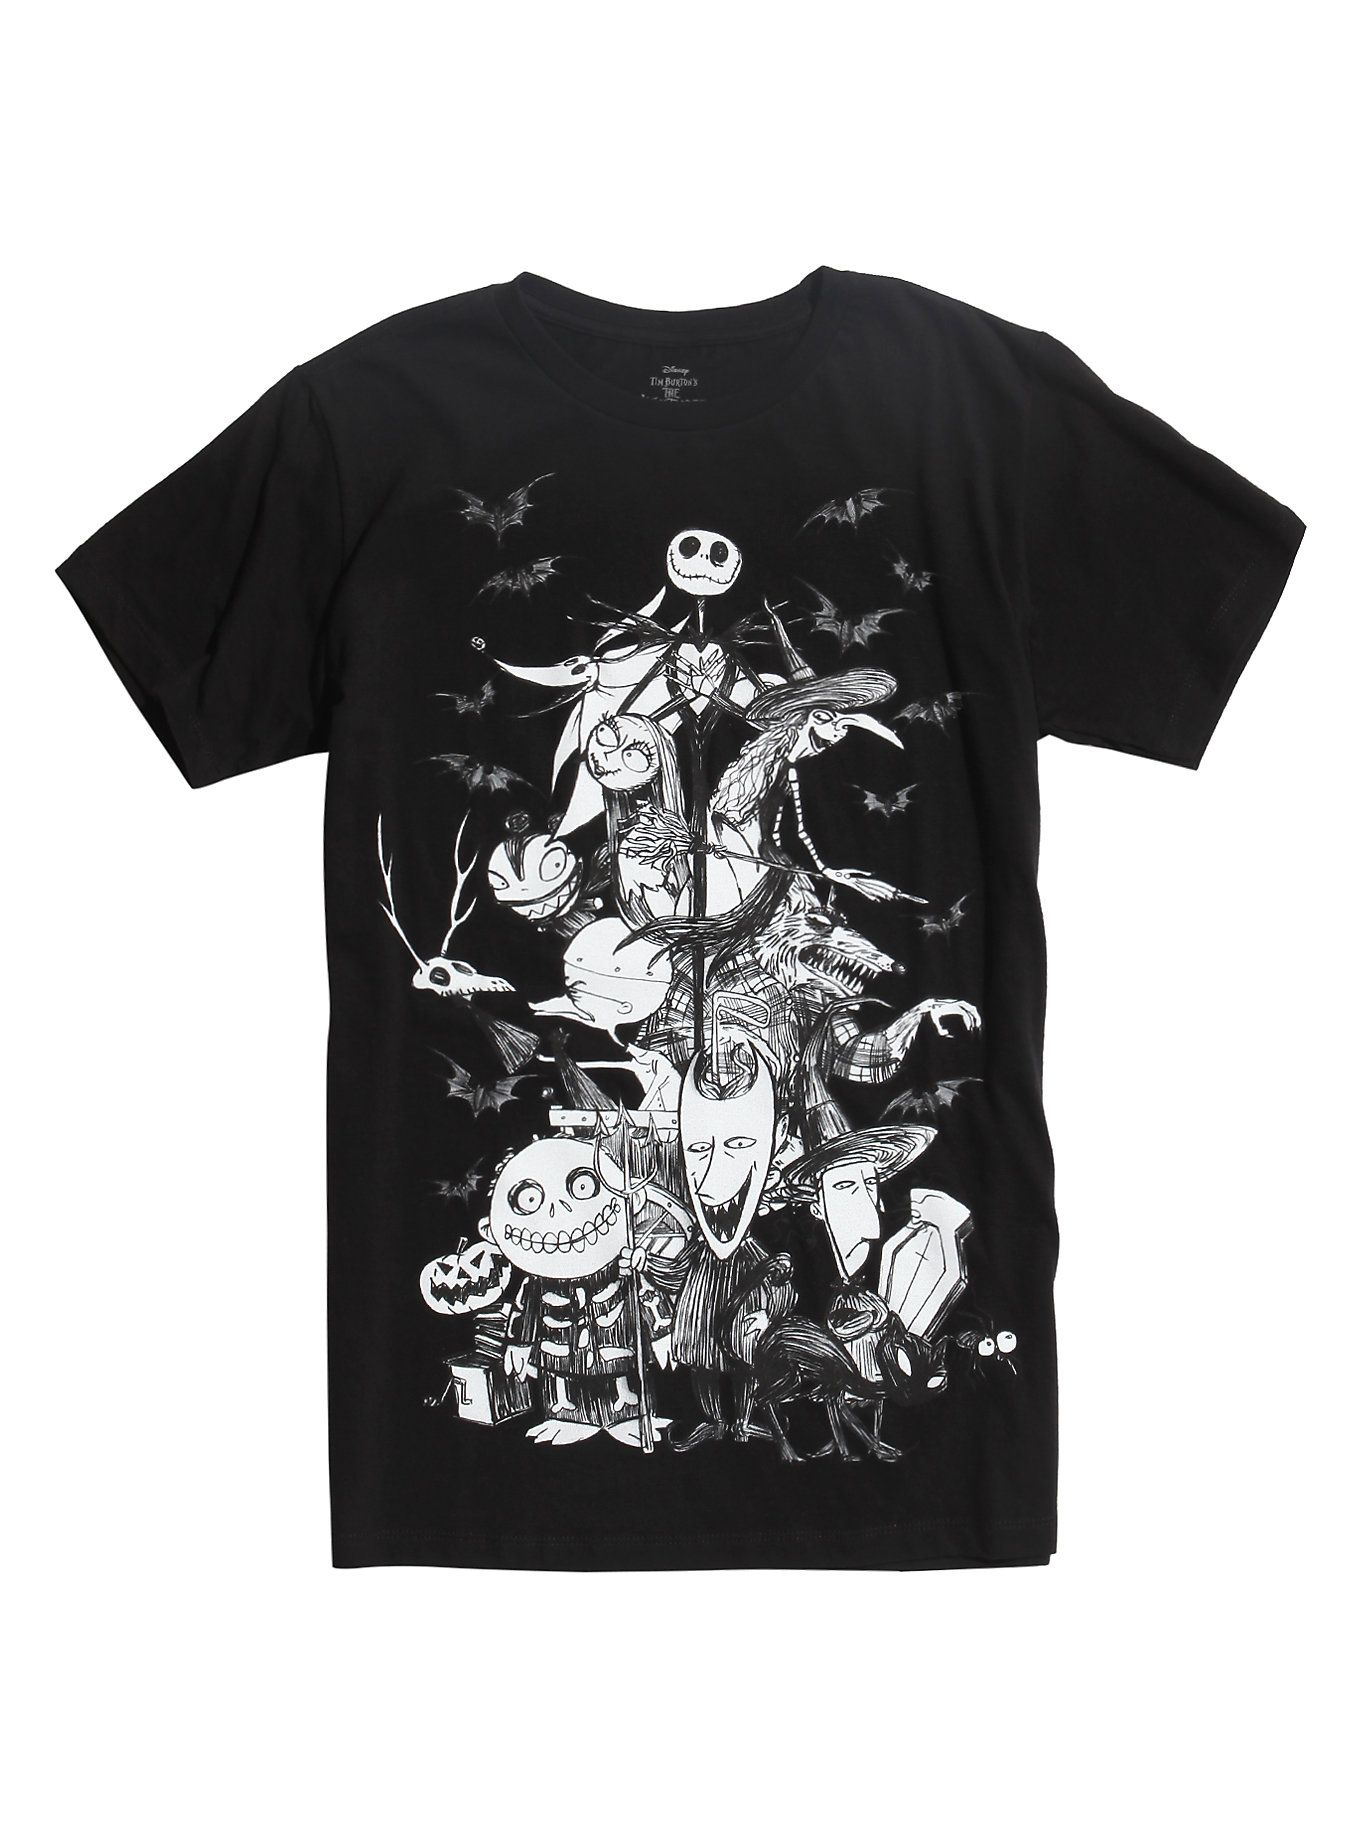 Nightmare Before Christmas Shirts | www.topsimages.com